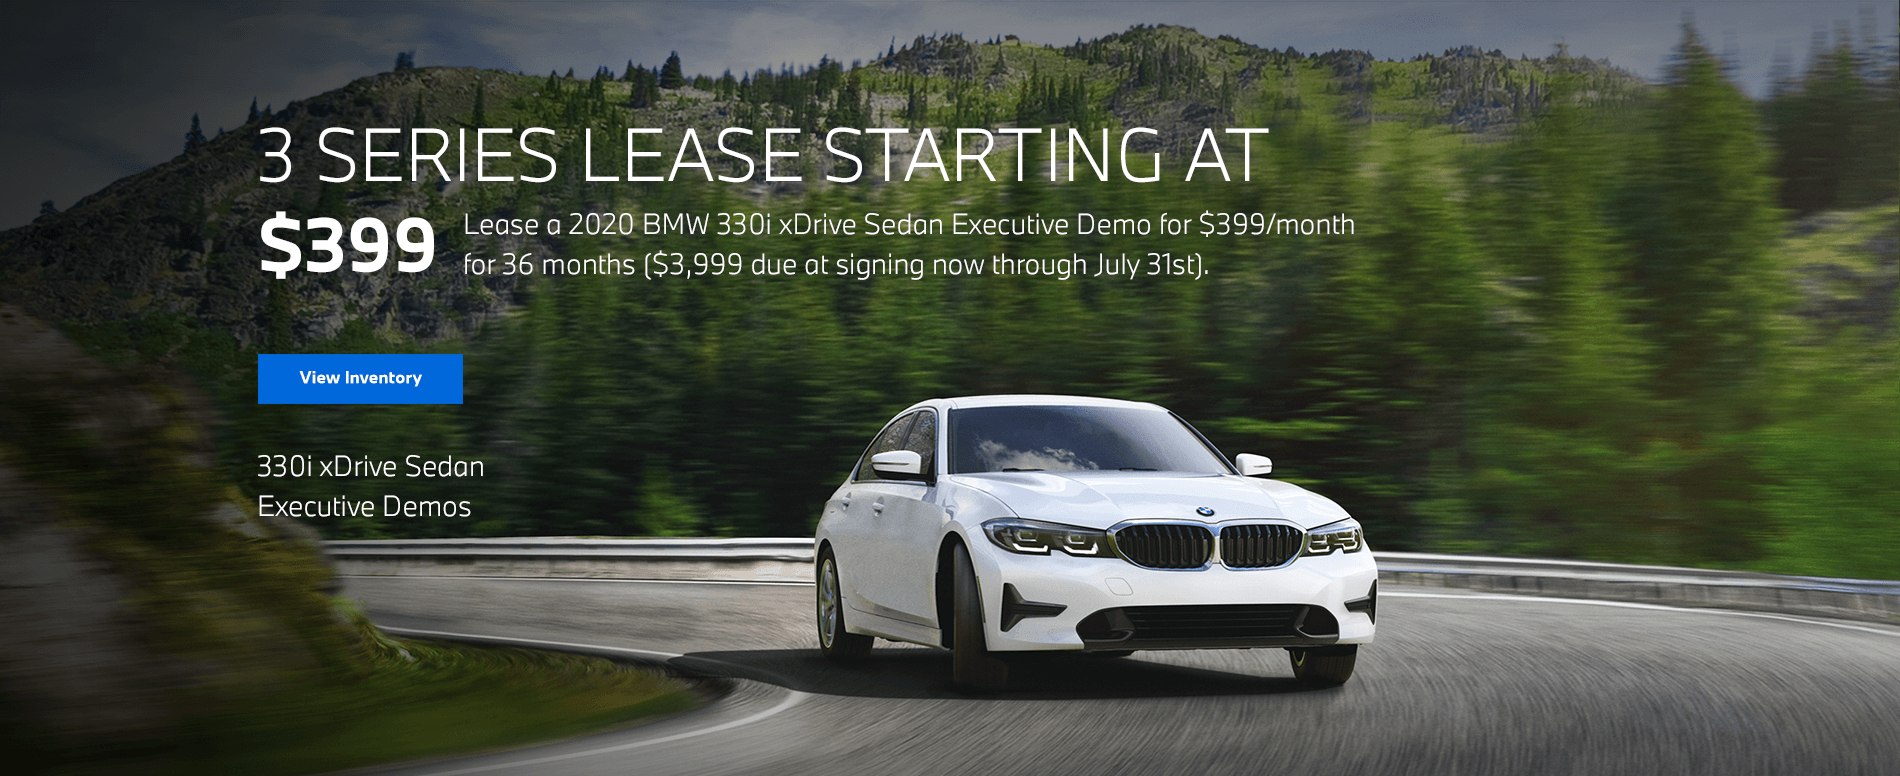 BMW 3 Series July